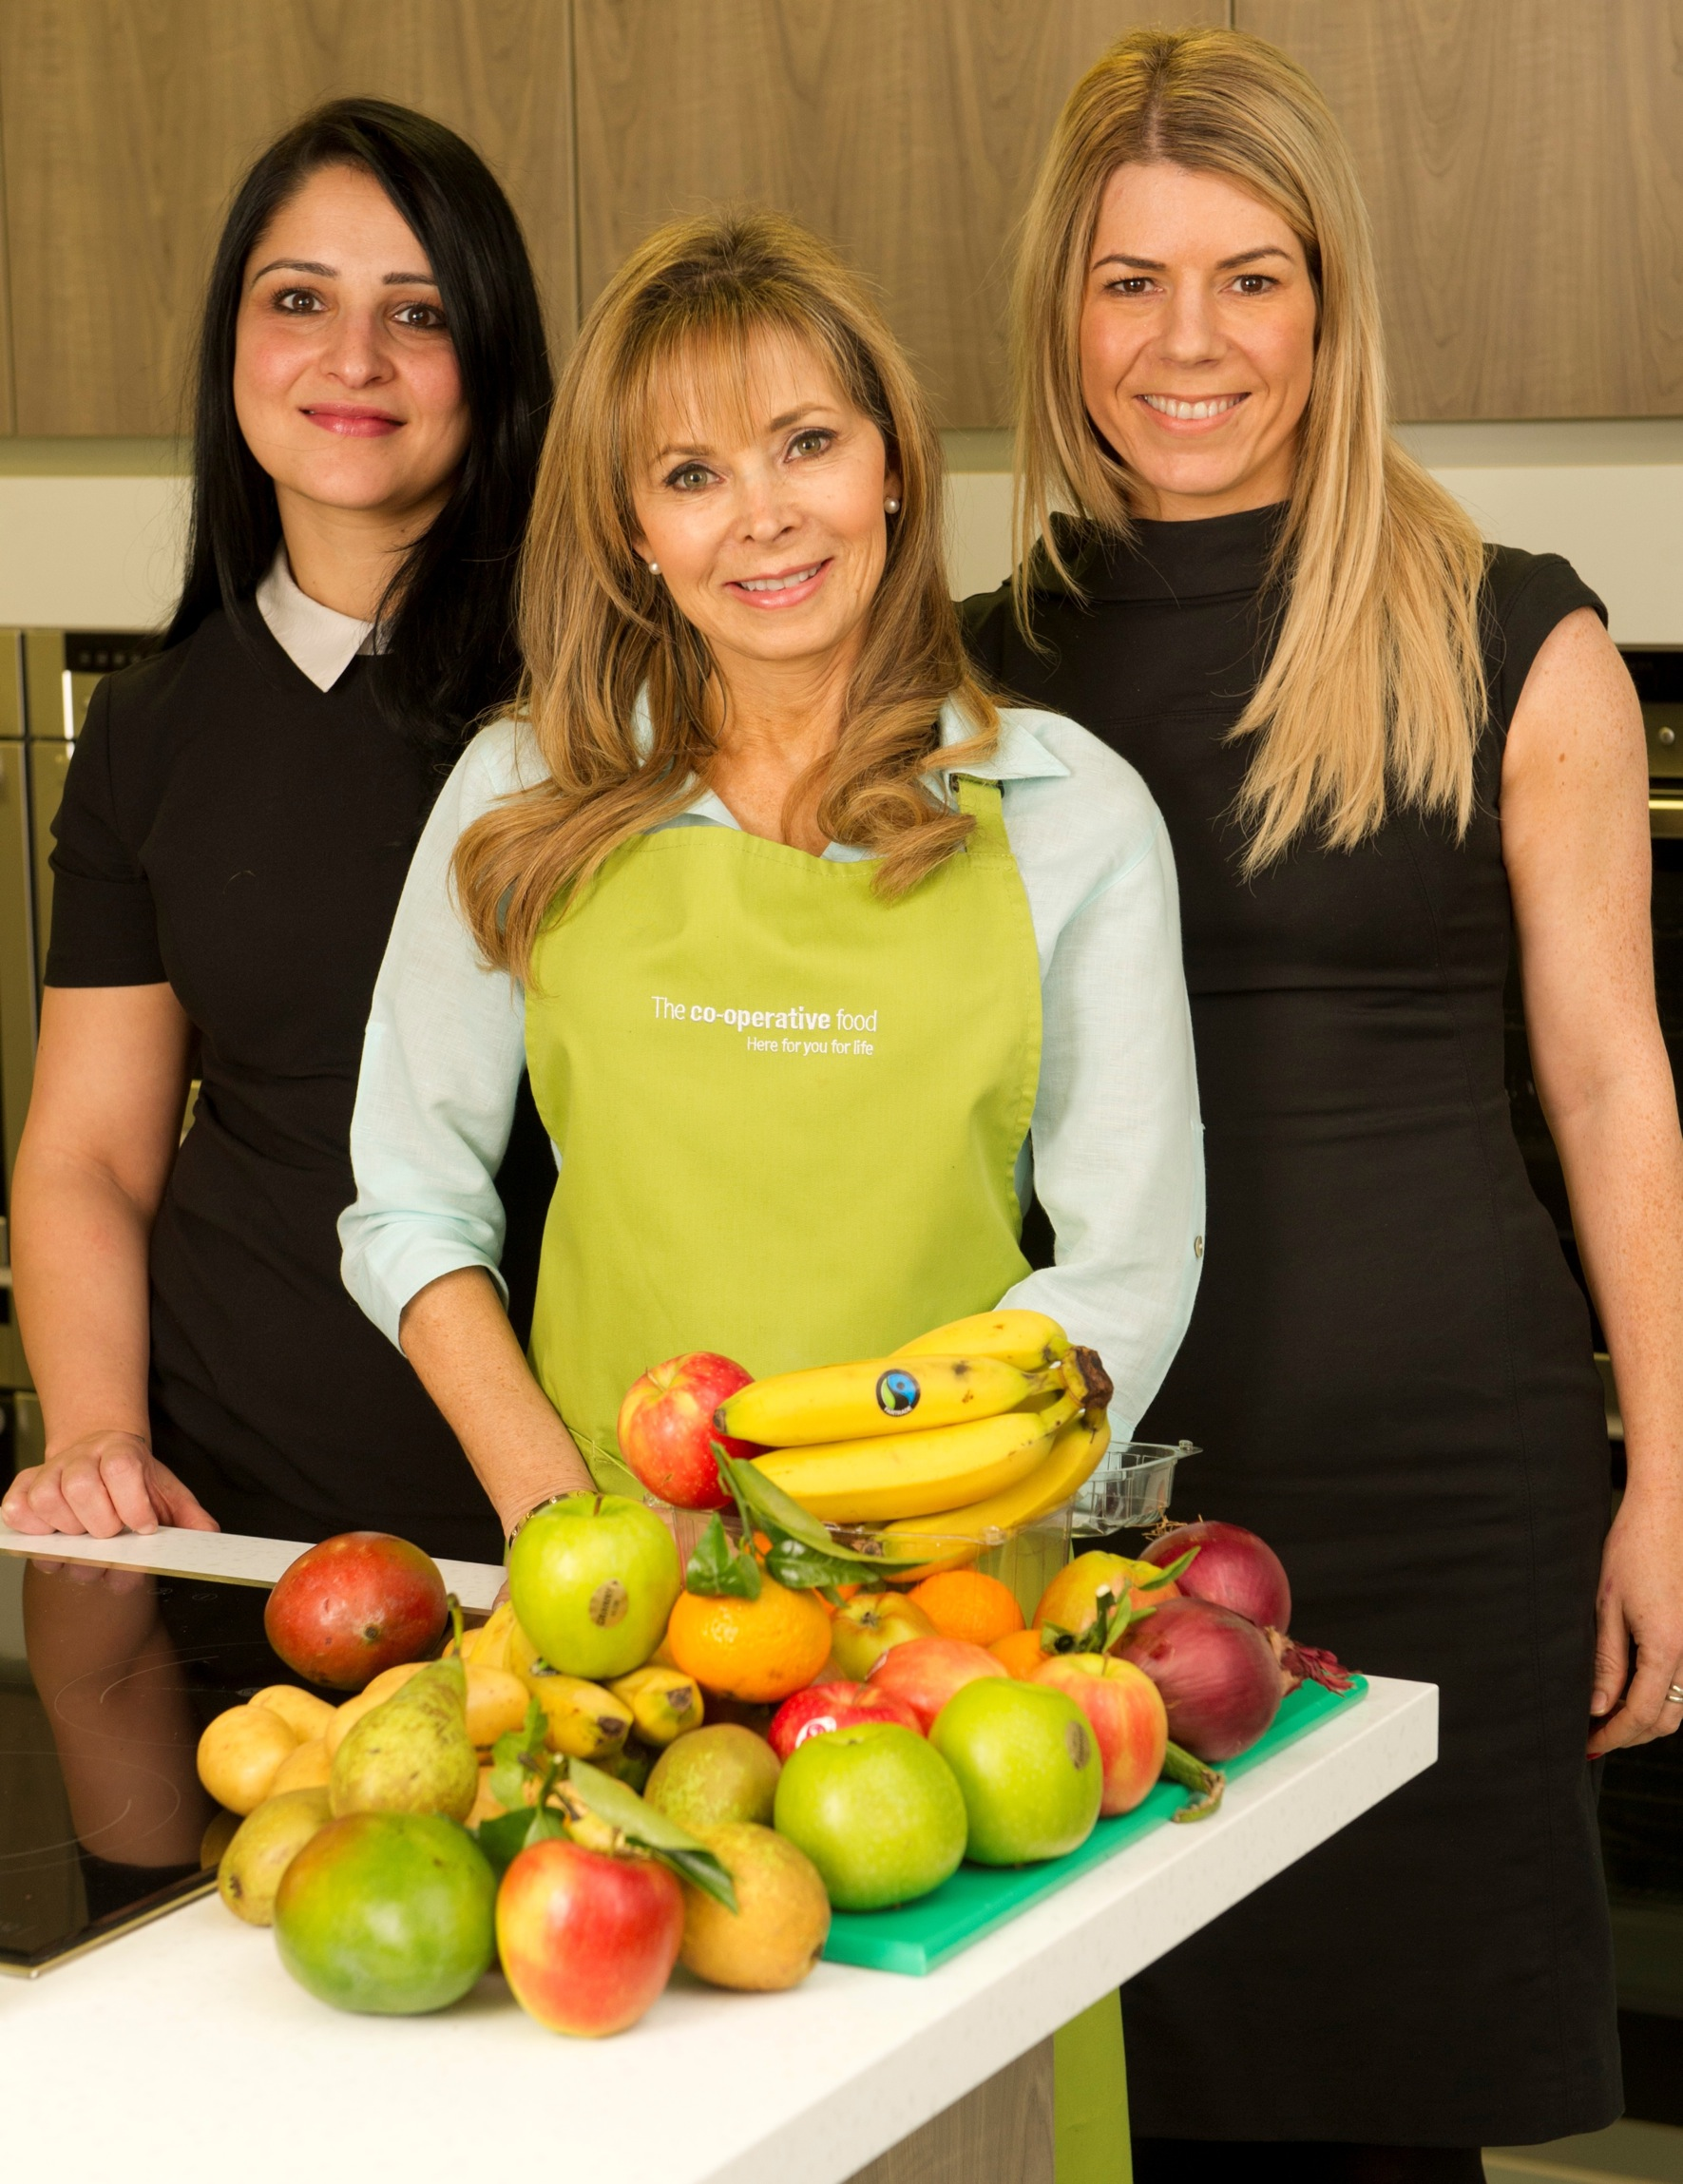 Karmel (centre) with Salma Khan, category trading manager for the baby category (left) and CJ Antal-Smith